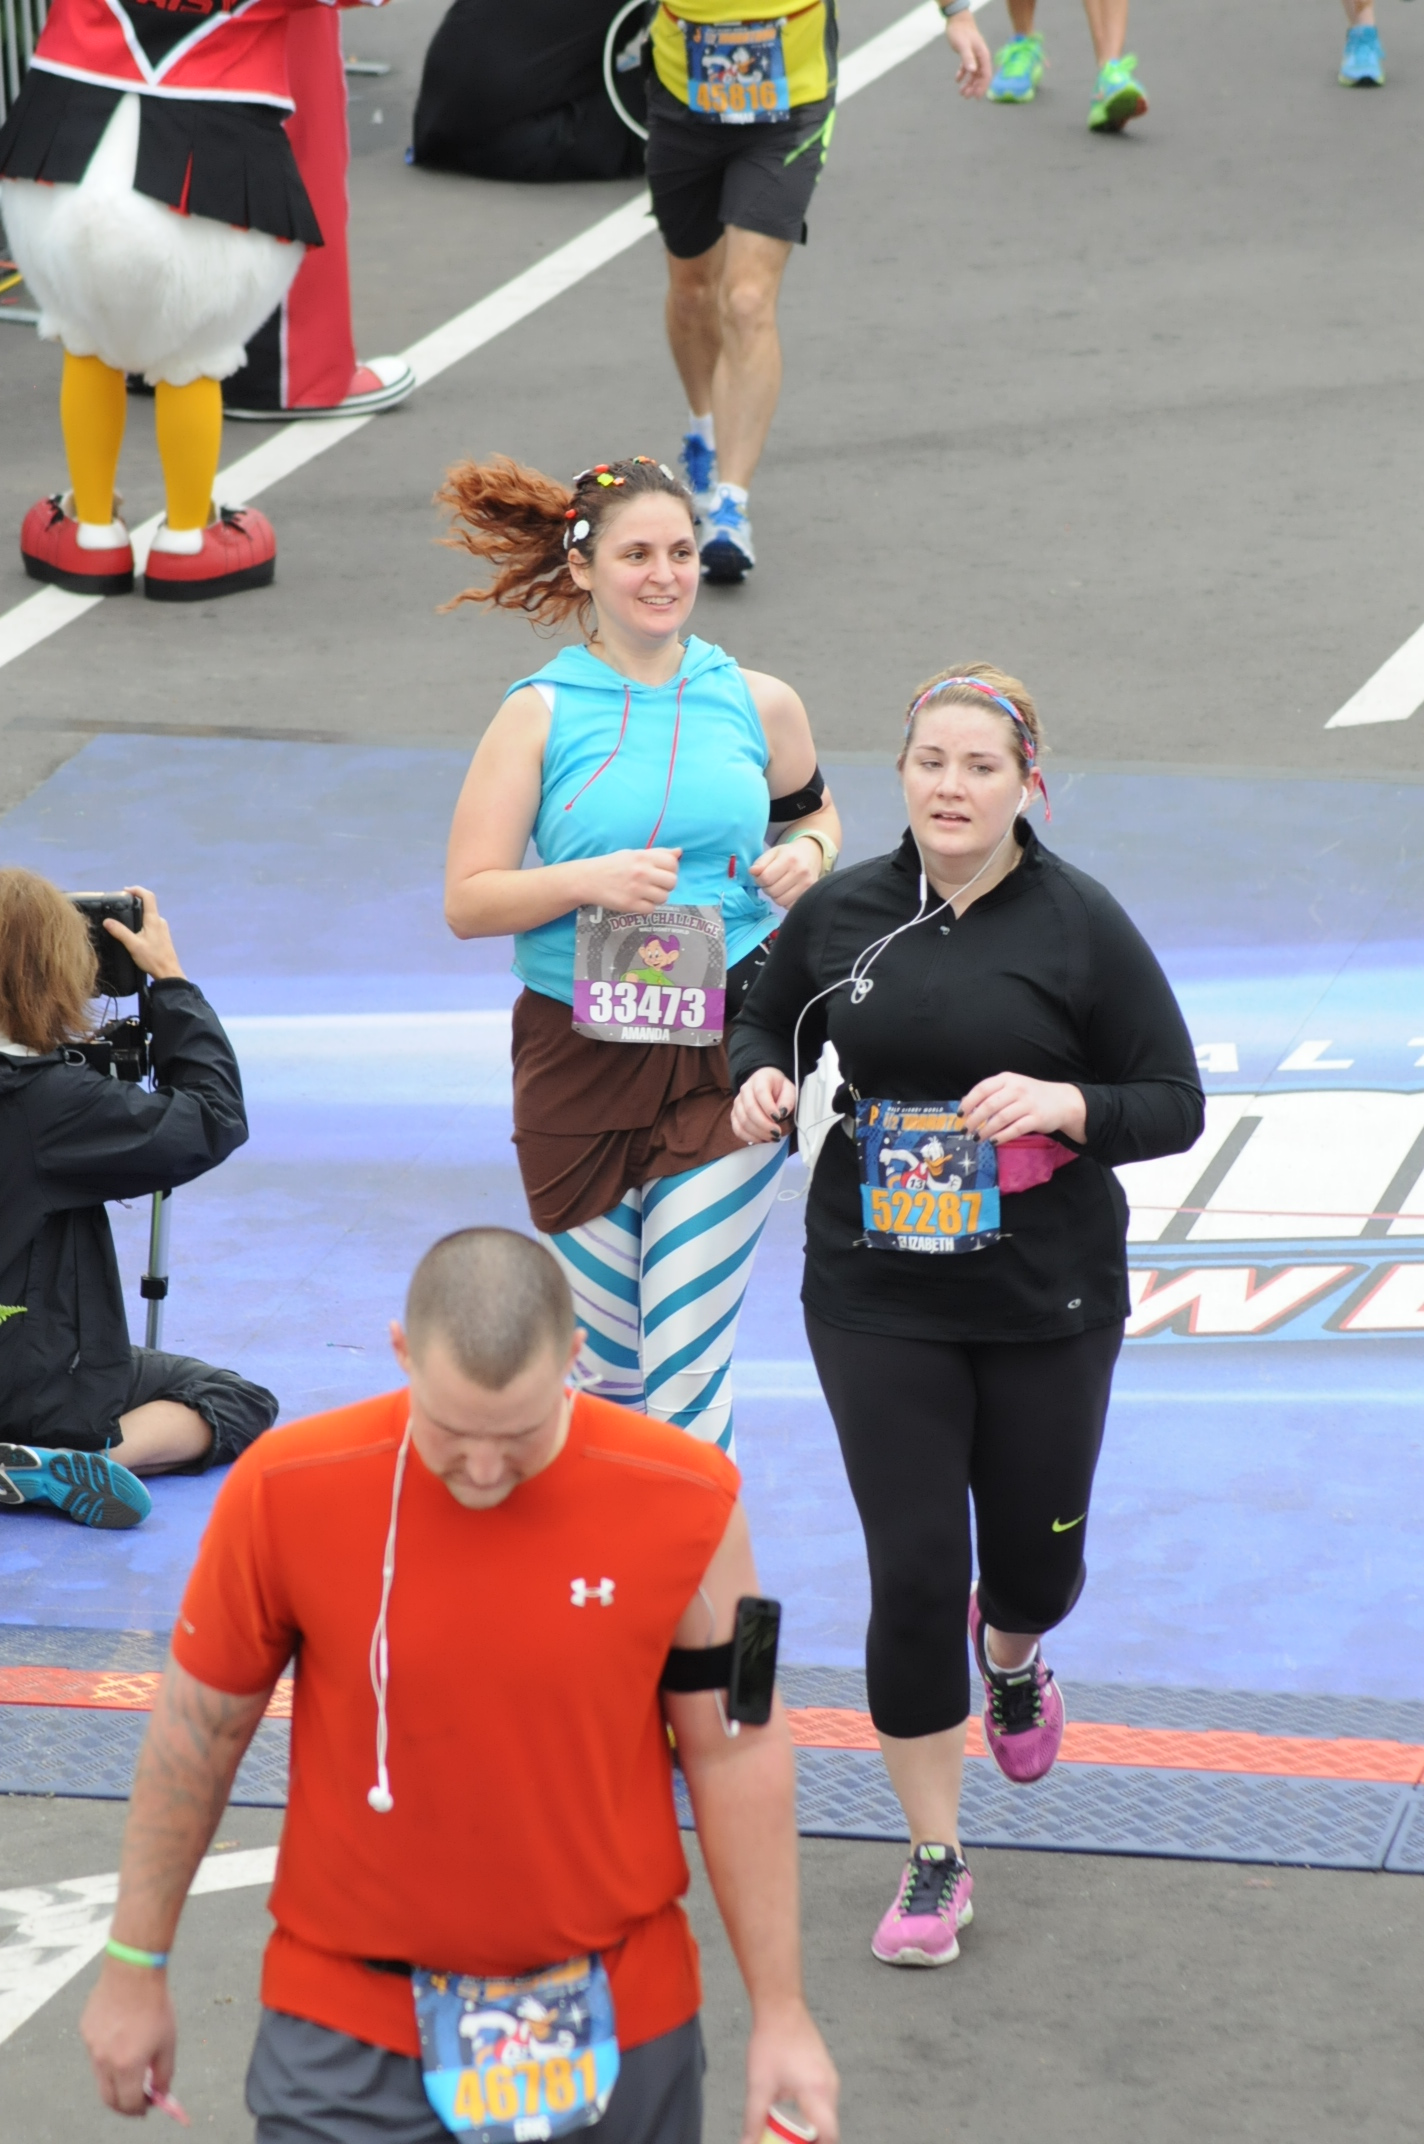 Running the inaugural dopey challenge day